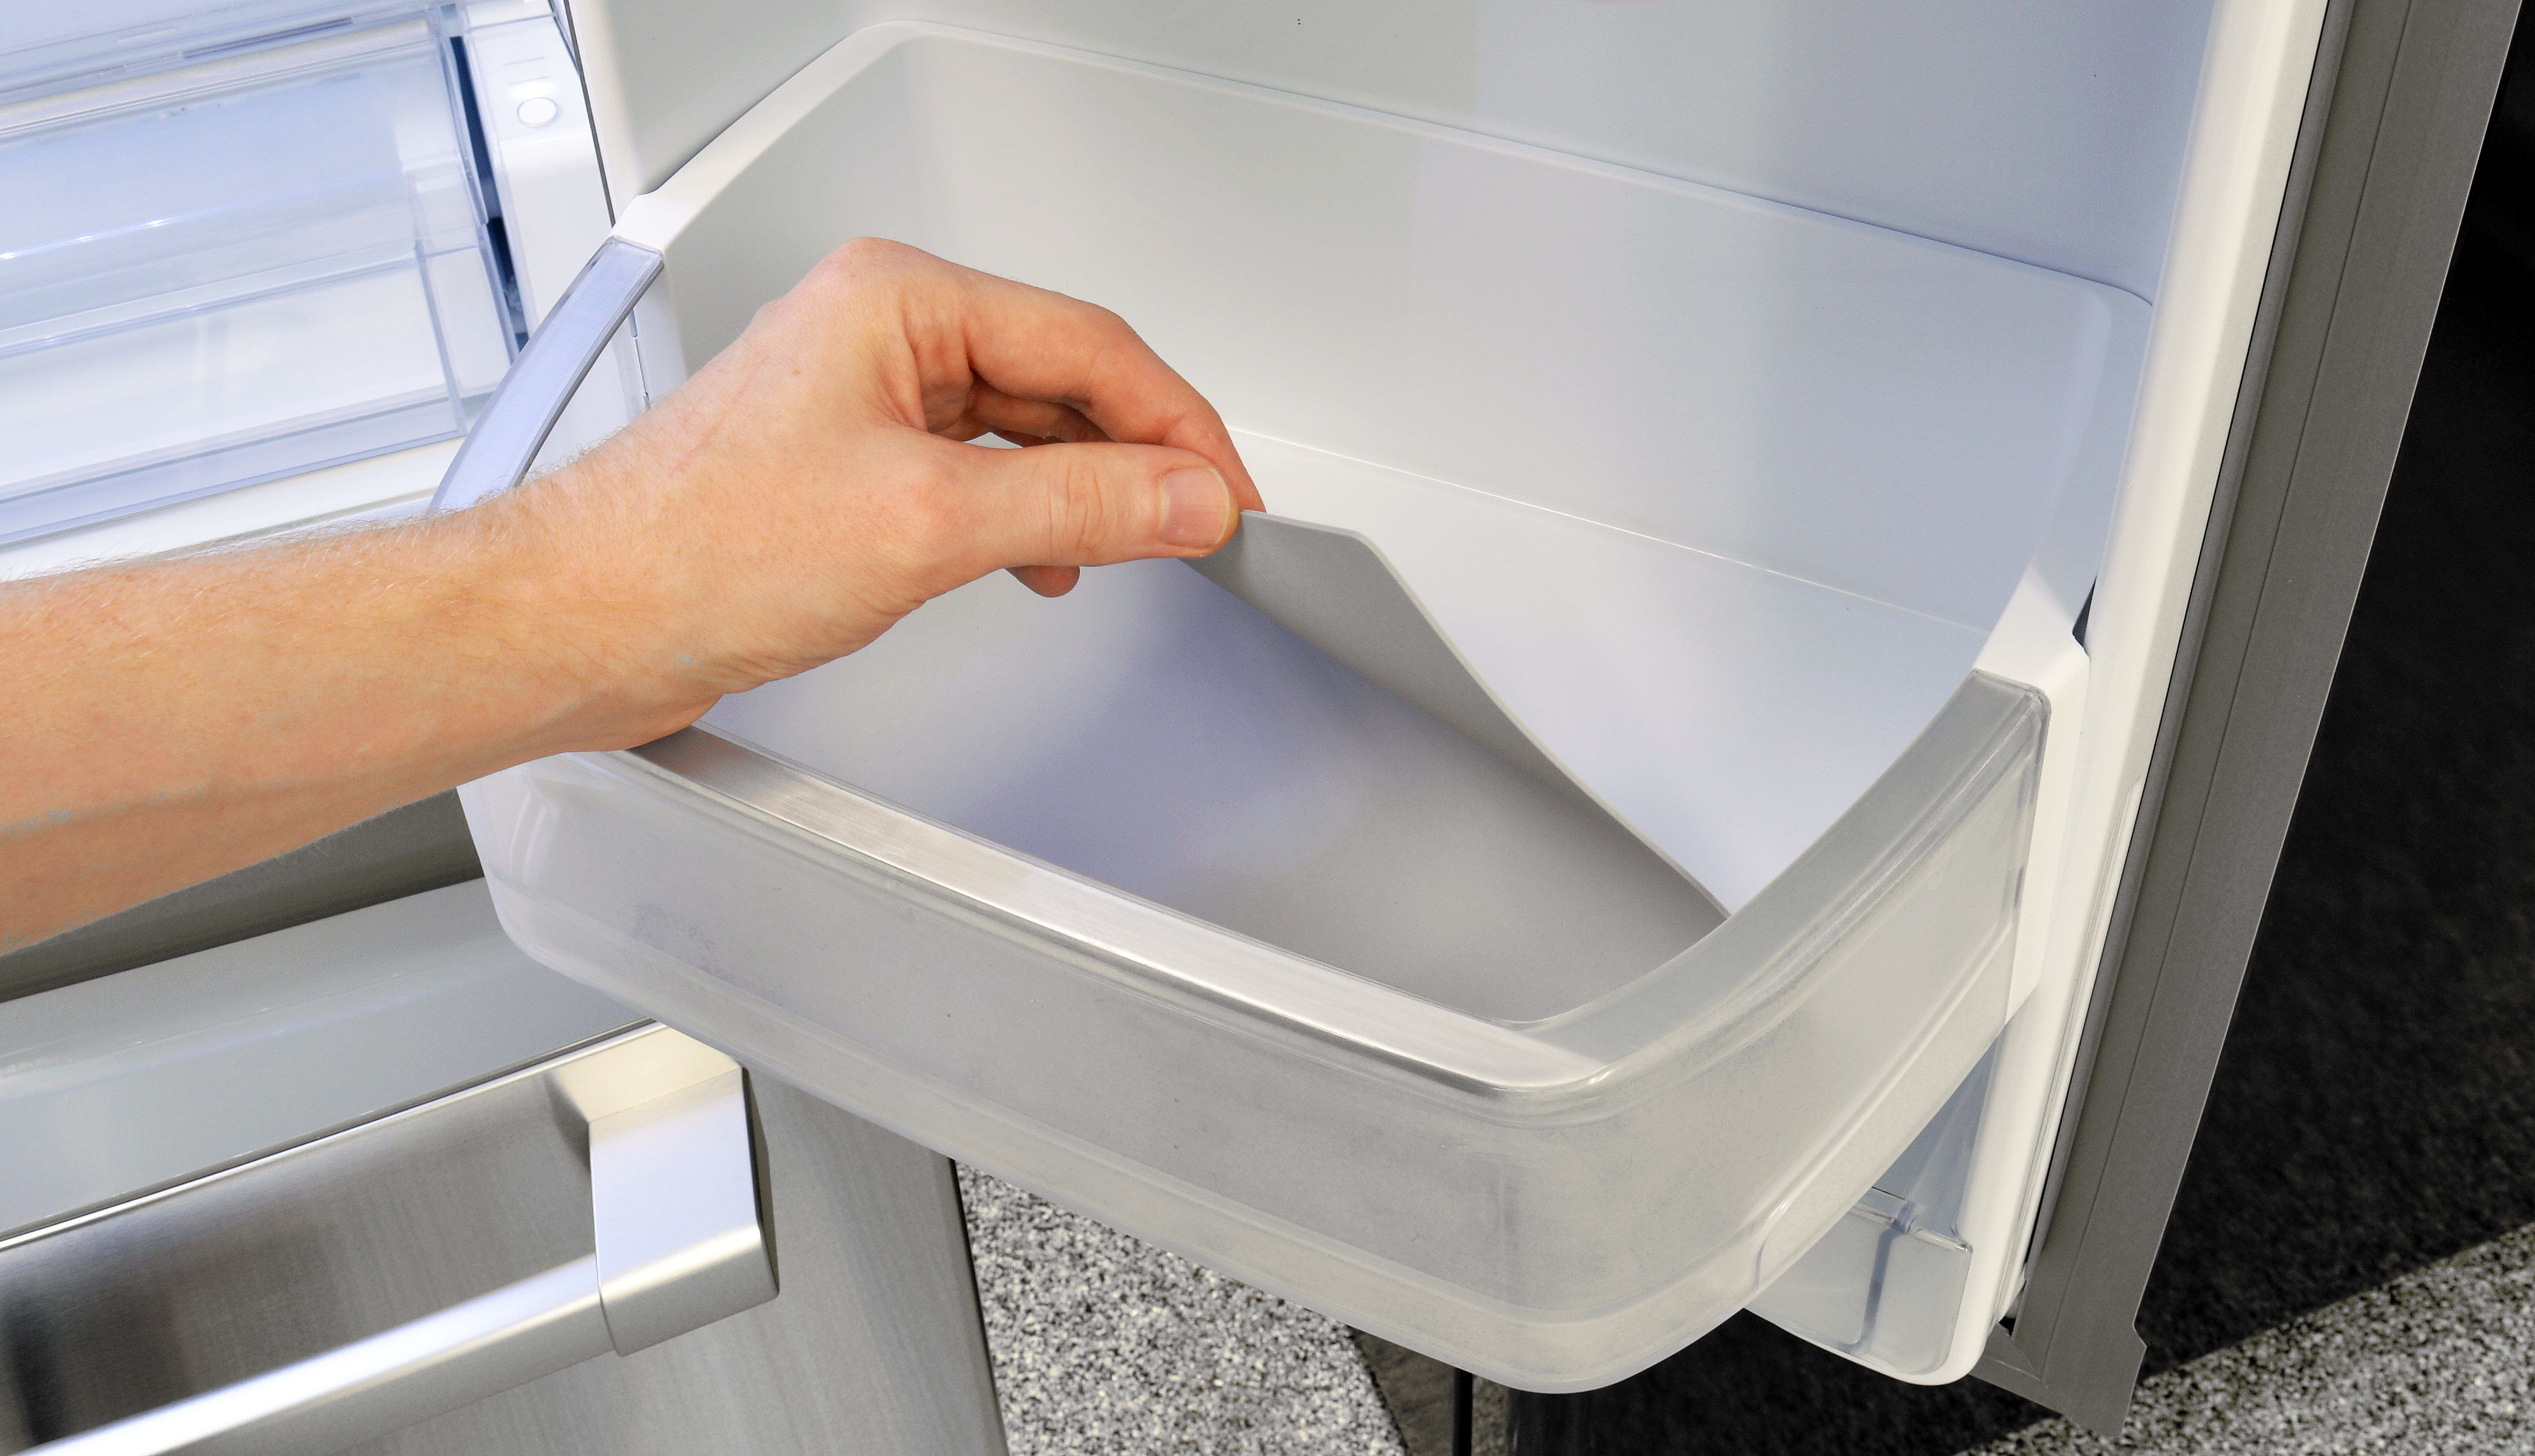 Each of the Kenmore Pro 79993's door shelves–except the dairy bin–have a removable rubber lining to aid in cleaning and spill containment.